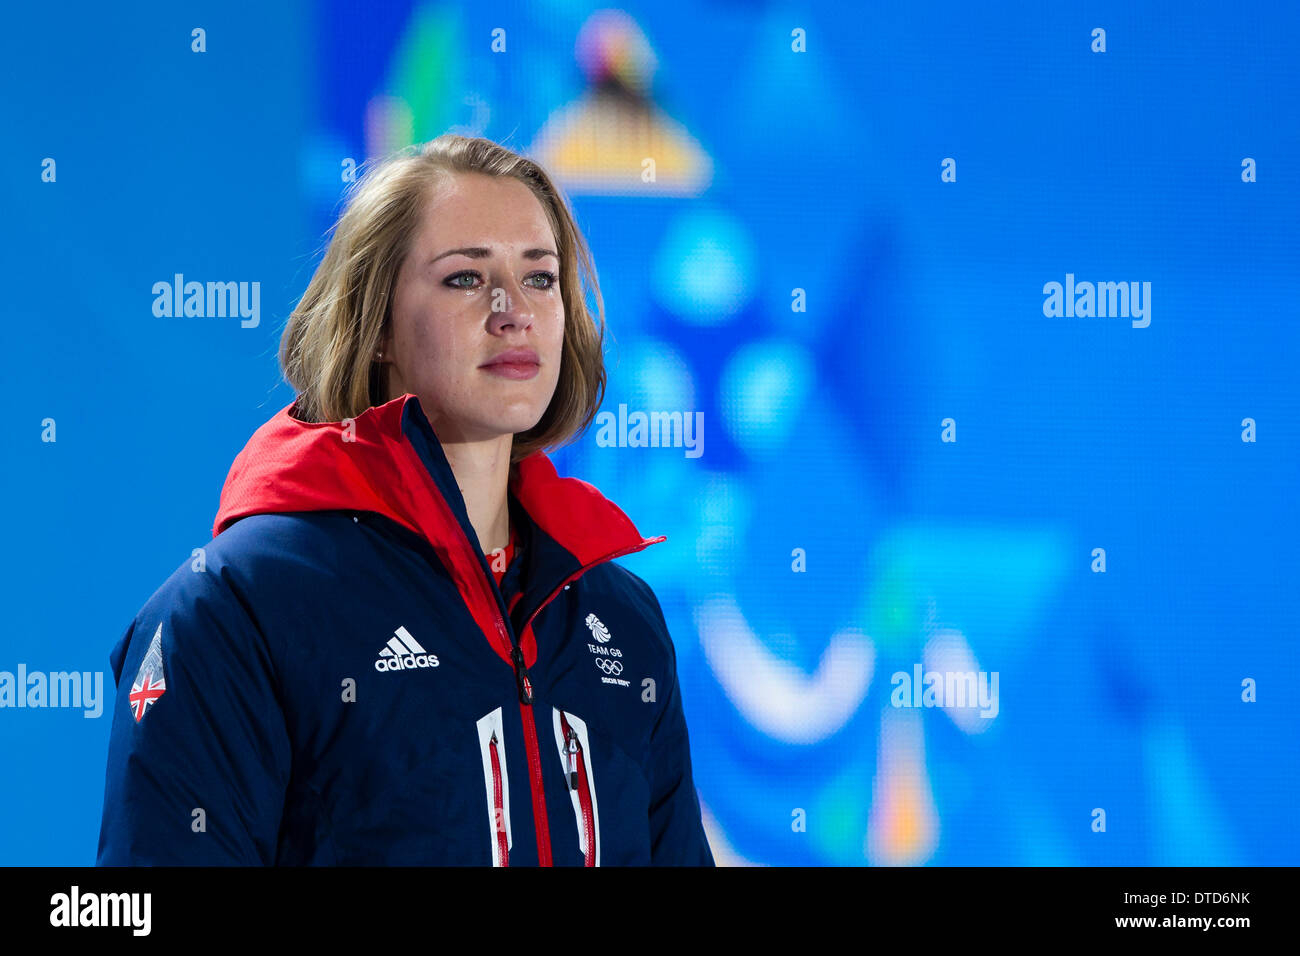 Sochi, Krasnodar Krai, Russia. 15th Feb, 2014. A tearful Lizzy YARNOLD (GBR) waits to receive her Gold medal during the Medal Ceremony for the Women's Skeleton at the Sochi Medals Plaza, Coastal Cluster - XXII Olympic Winter Games Credit:  Action Plus Sports/Alamy Live News - Stock Image